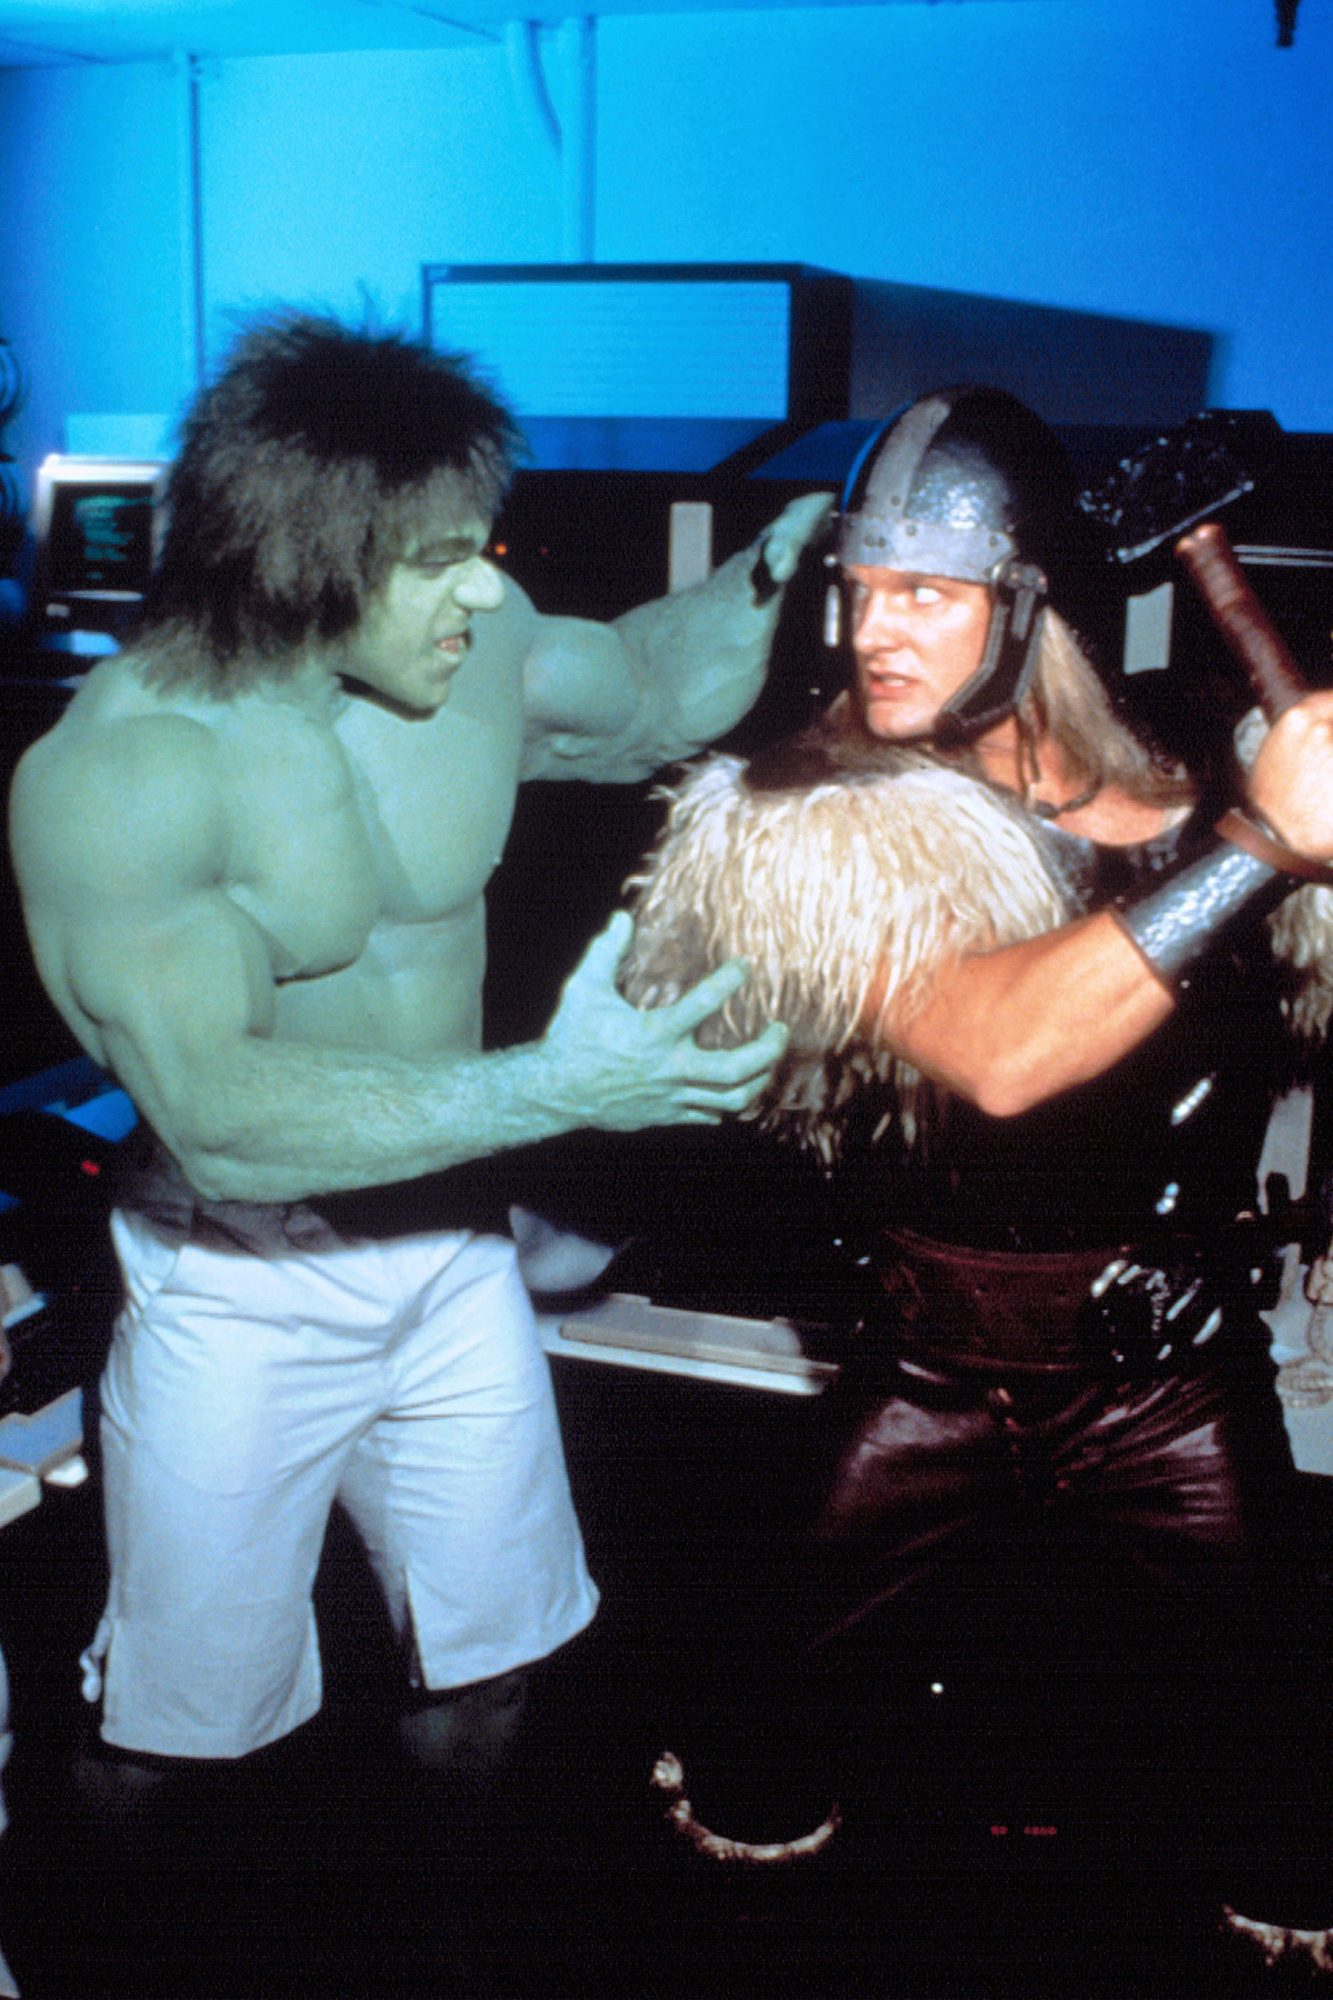 INCREDIBLE HULK RETURNS,  Lou Ferrigno, Eric Kramer, 1988. The Incredible Hulk, joins forces with Th